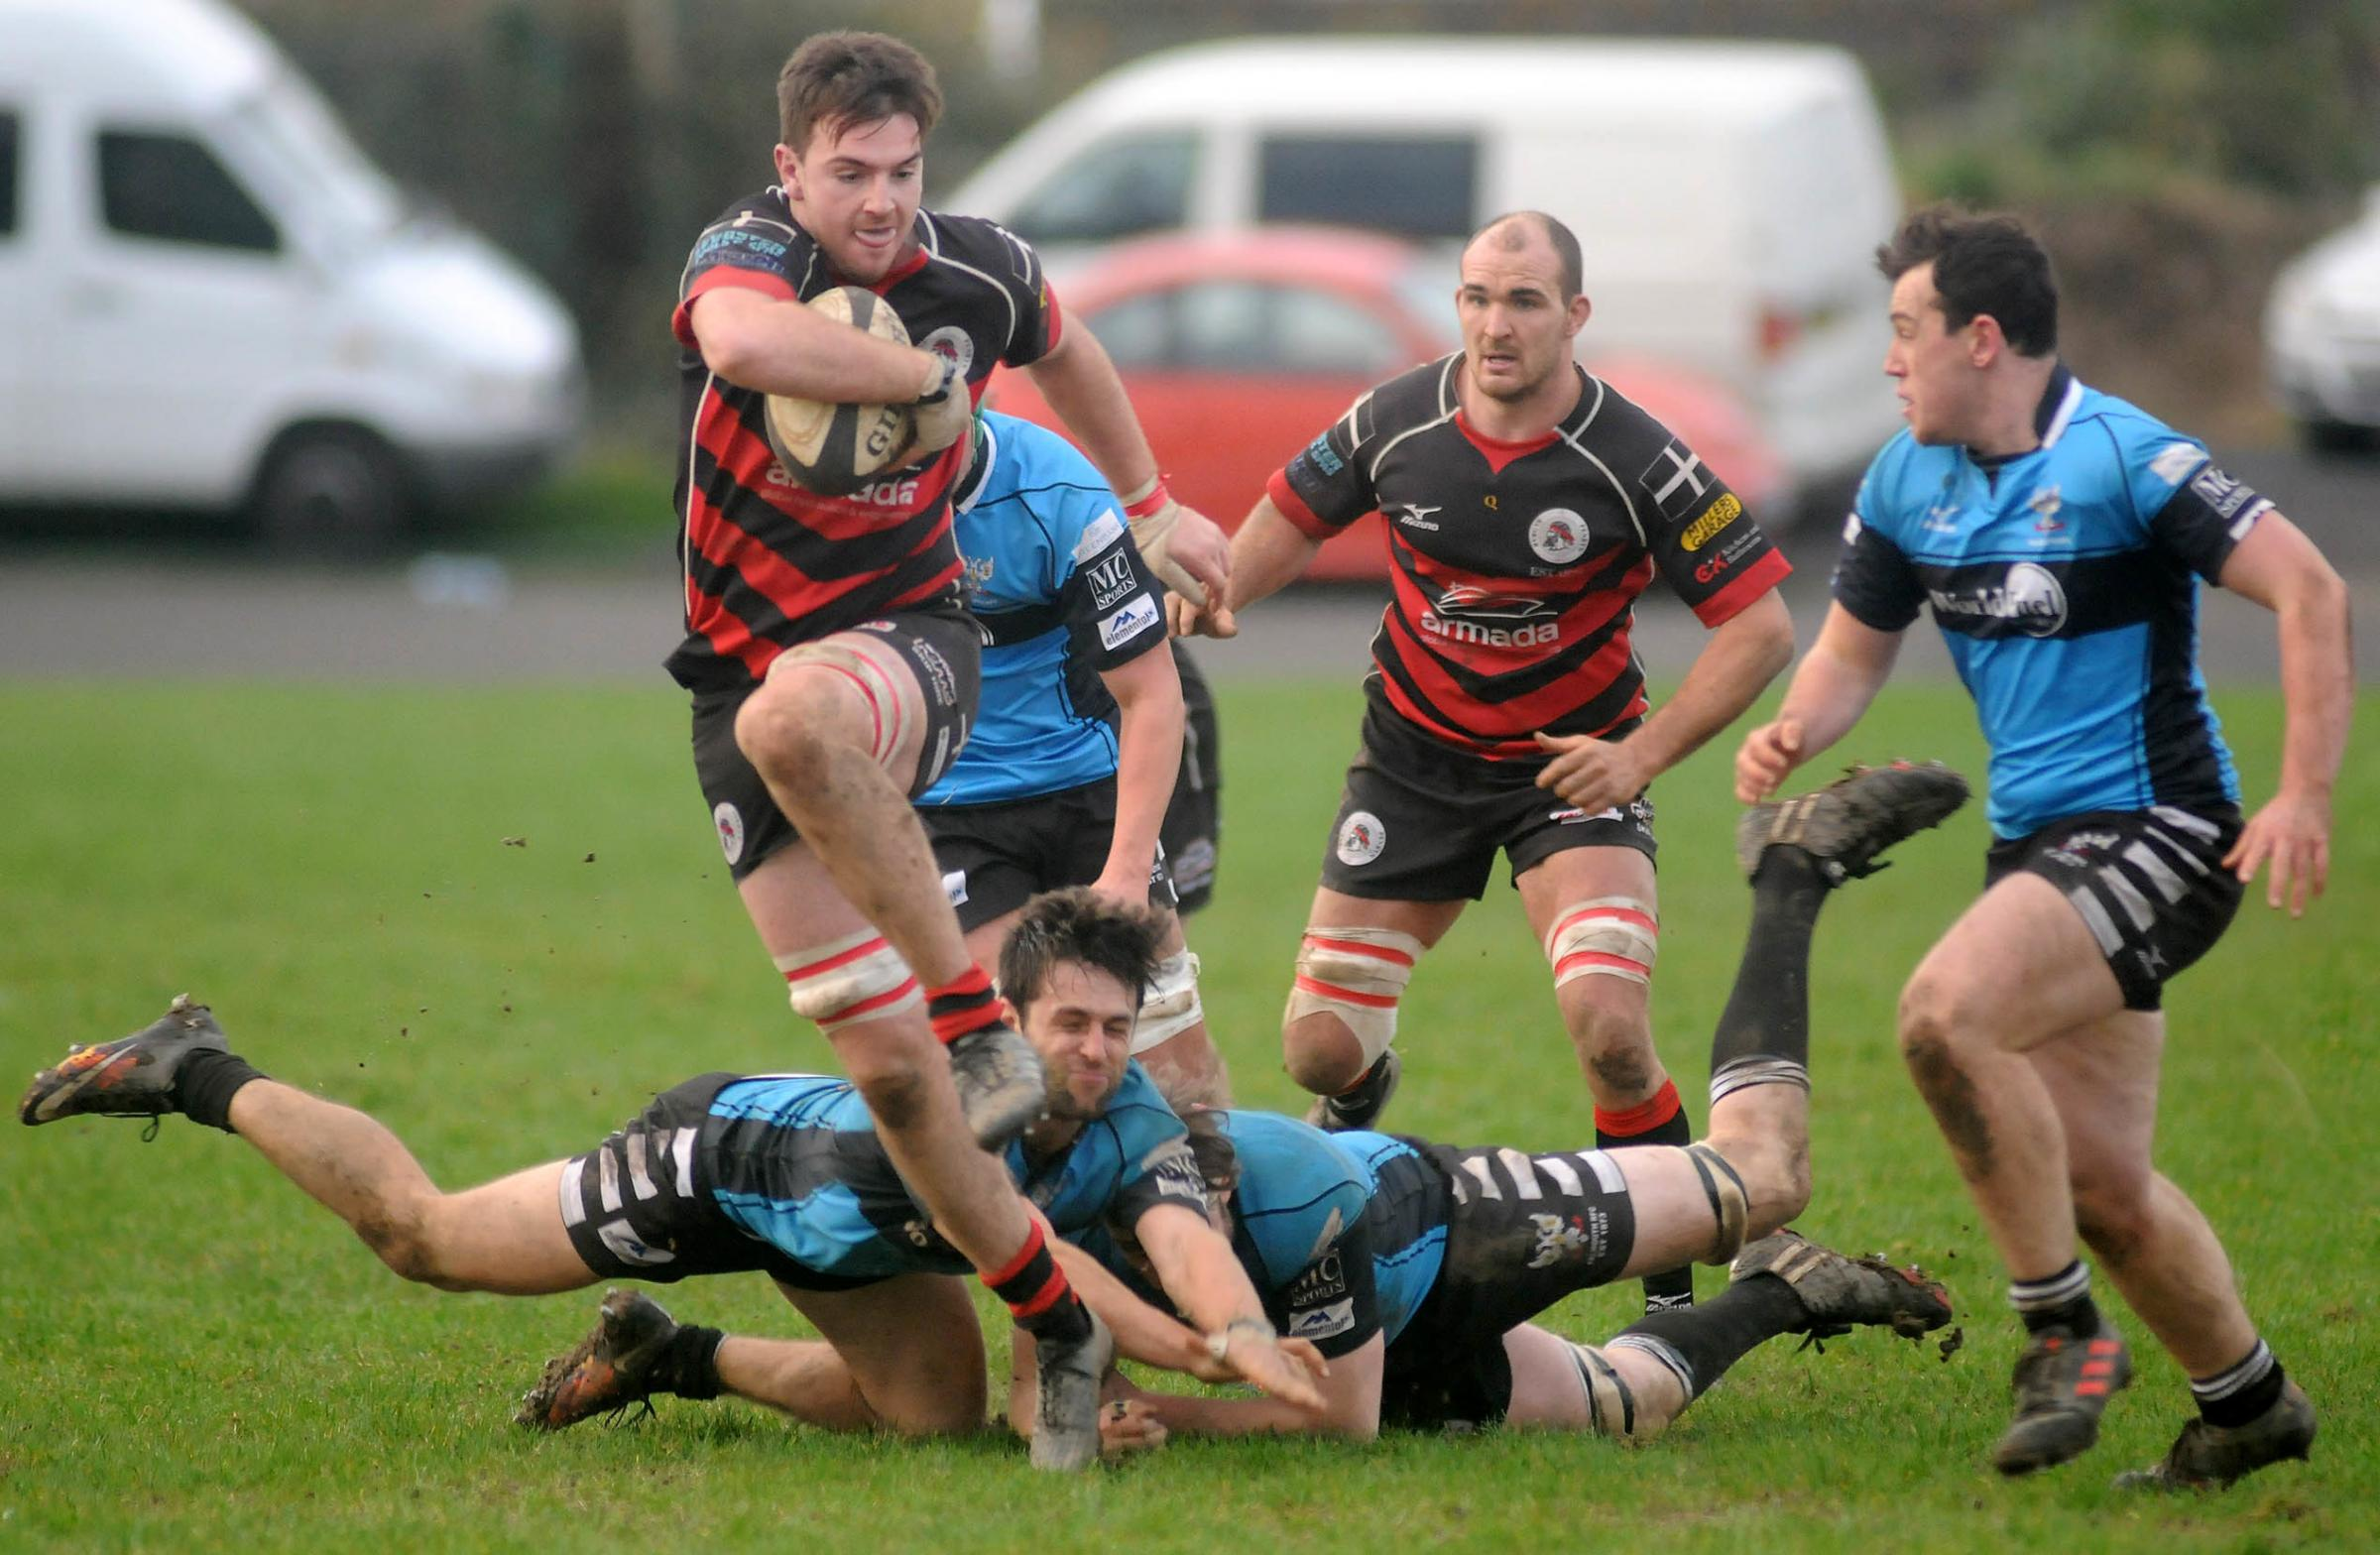 Adam Hughes scored four tries in Penryn's win over Hayle. Picture by Colin Higgs